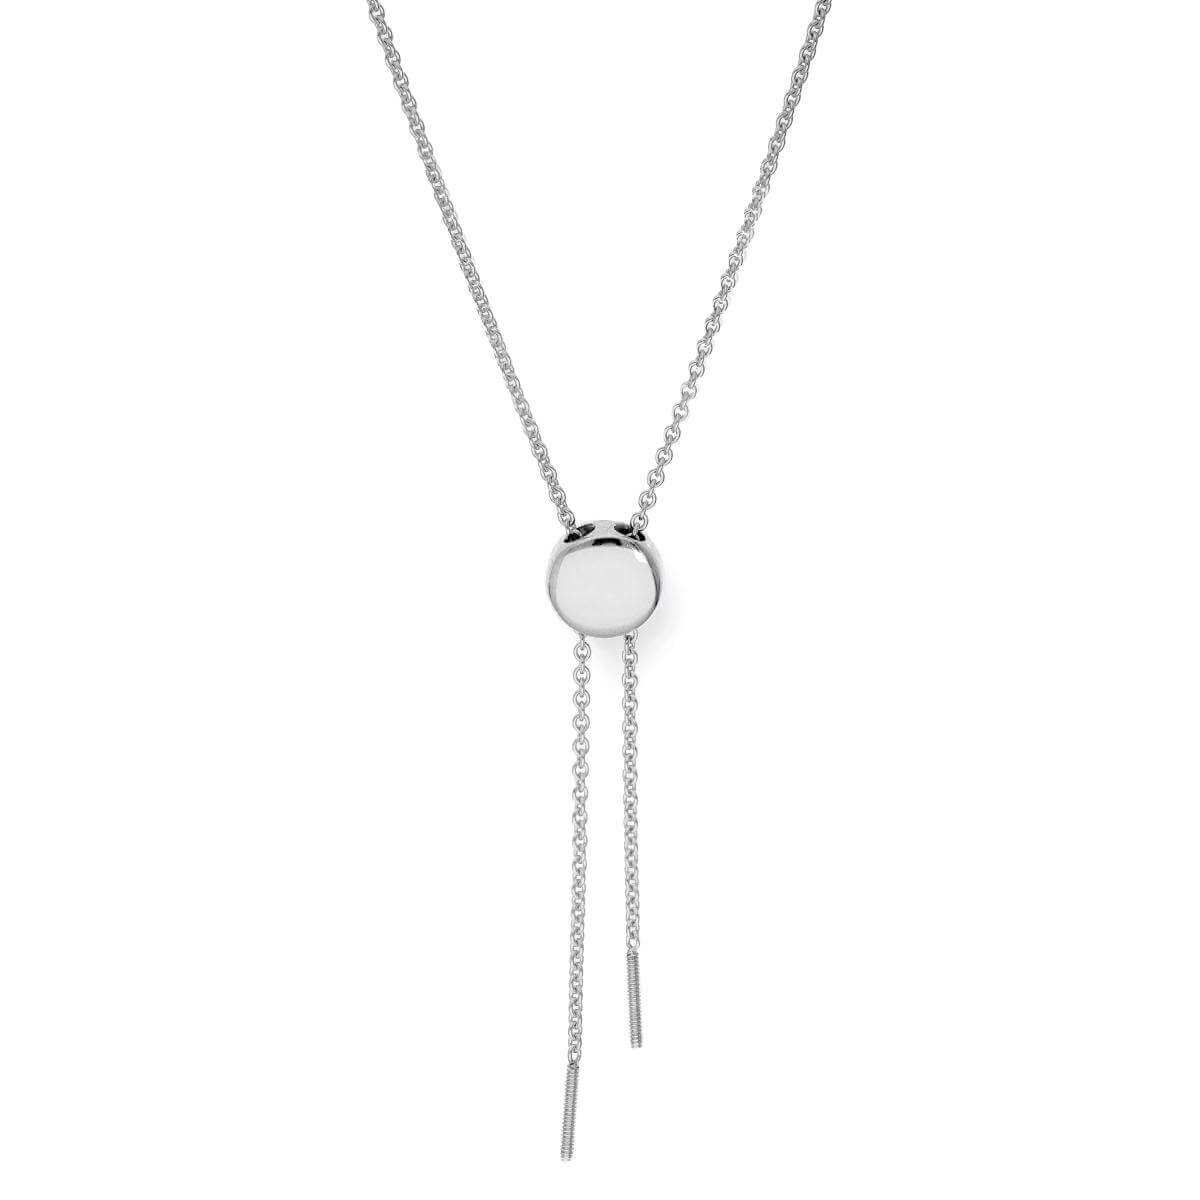 9ct Rhodium Plated White Gold Adjustable Necklace w Max Length 26 Inches